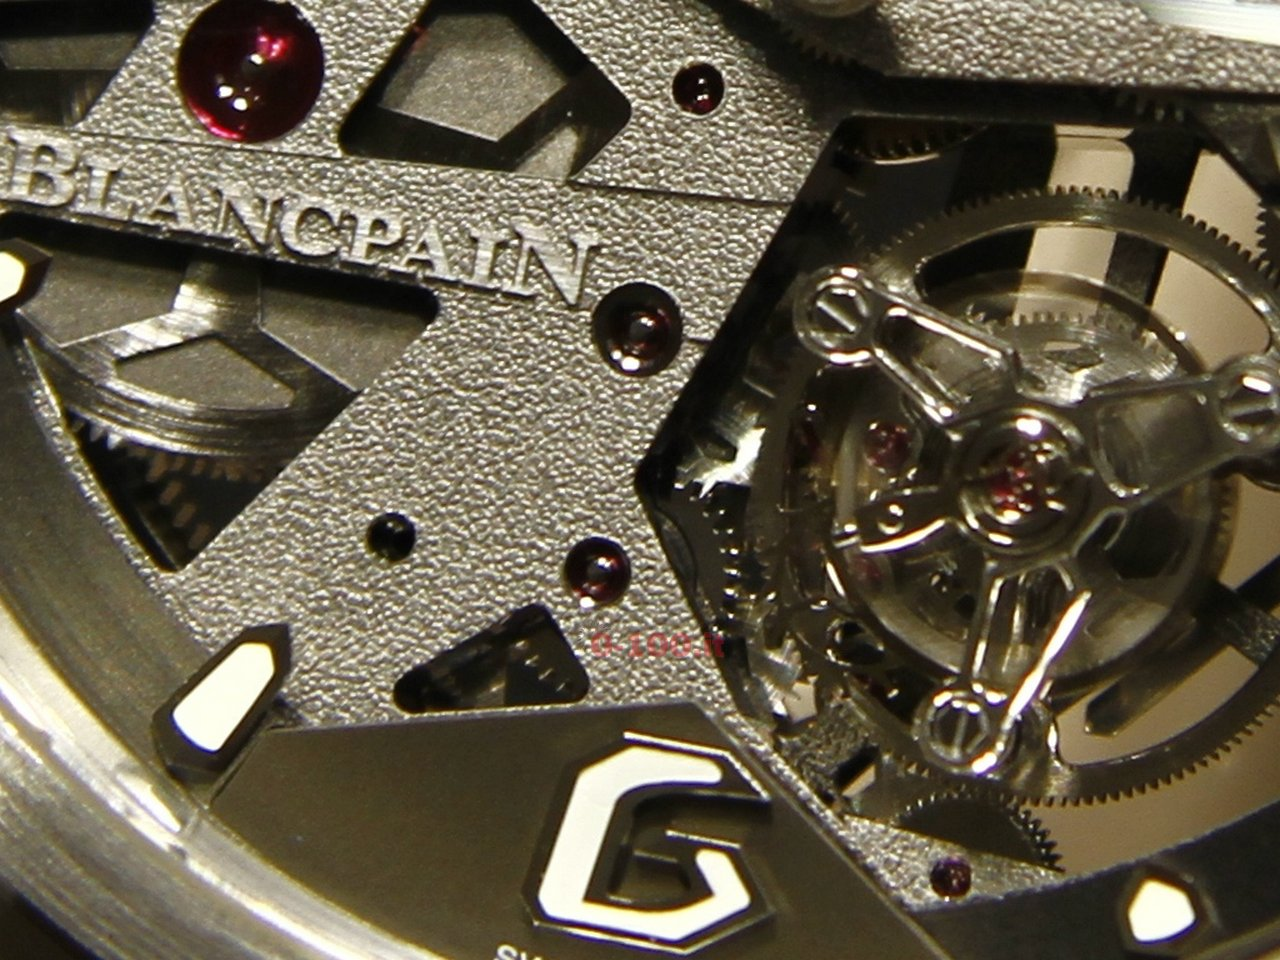 baselworld-2015_blancpain-l-evolution-caroussel-tourbillon-0-100-14